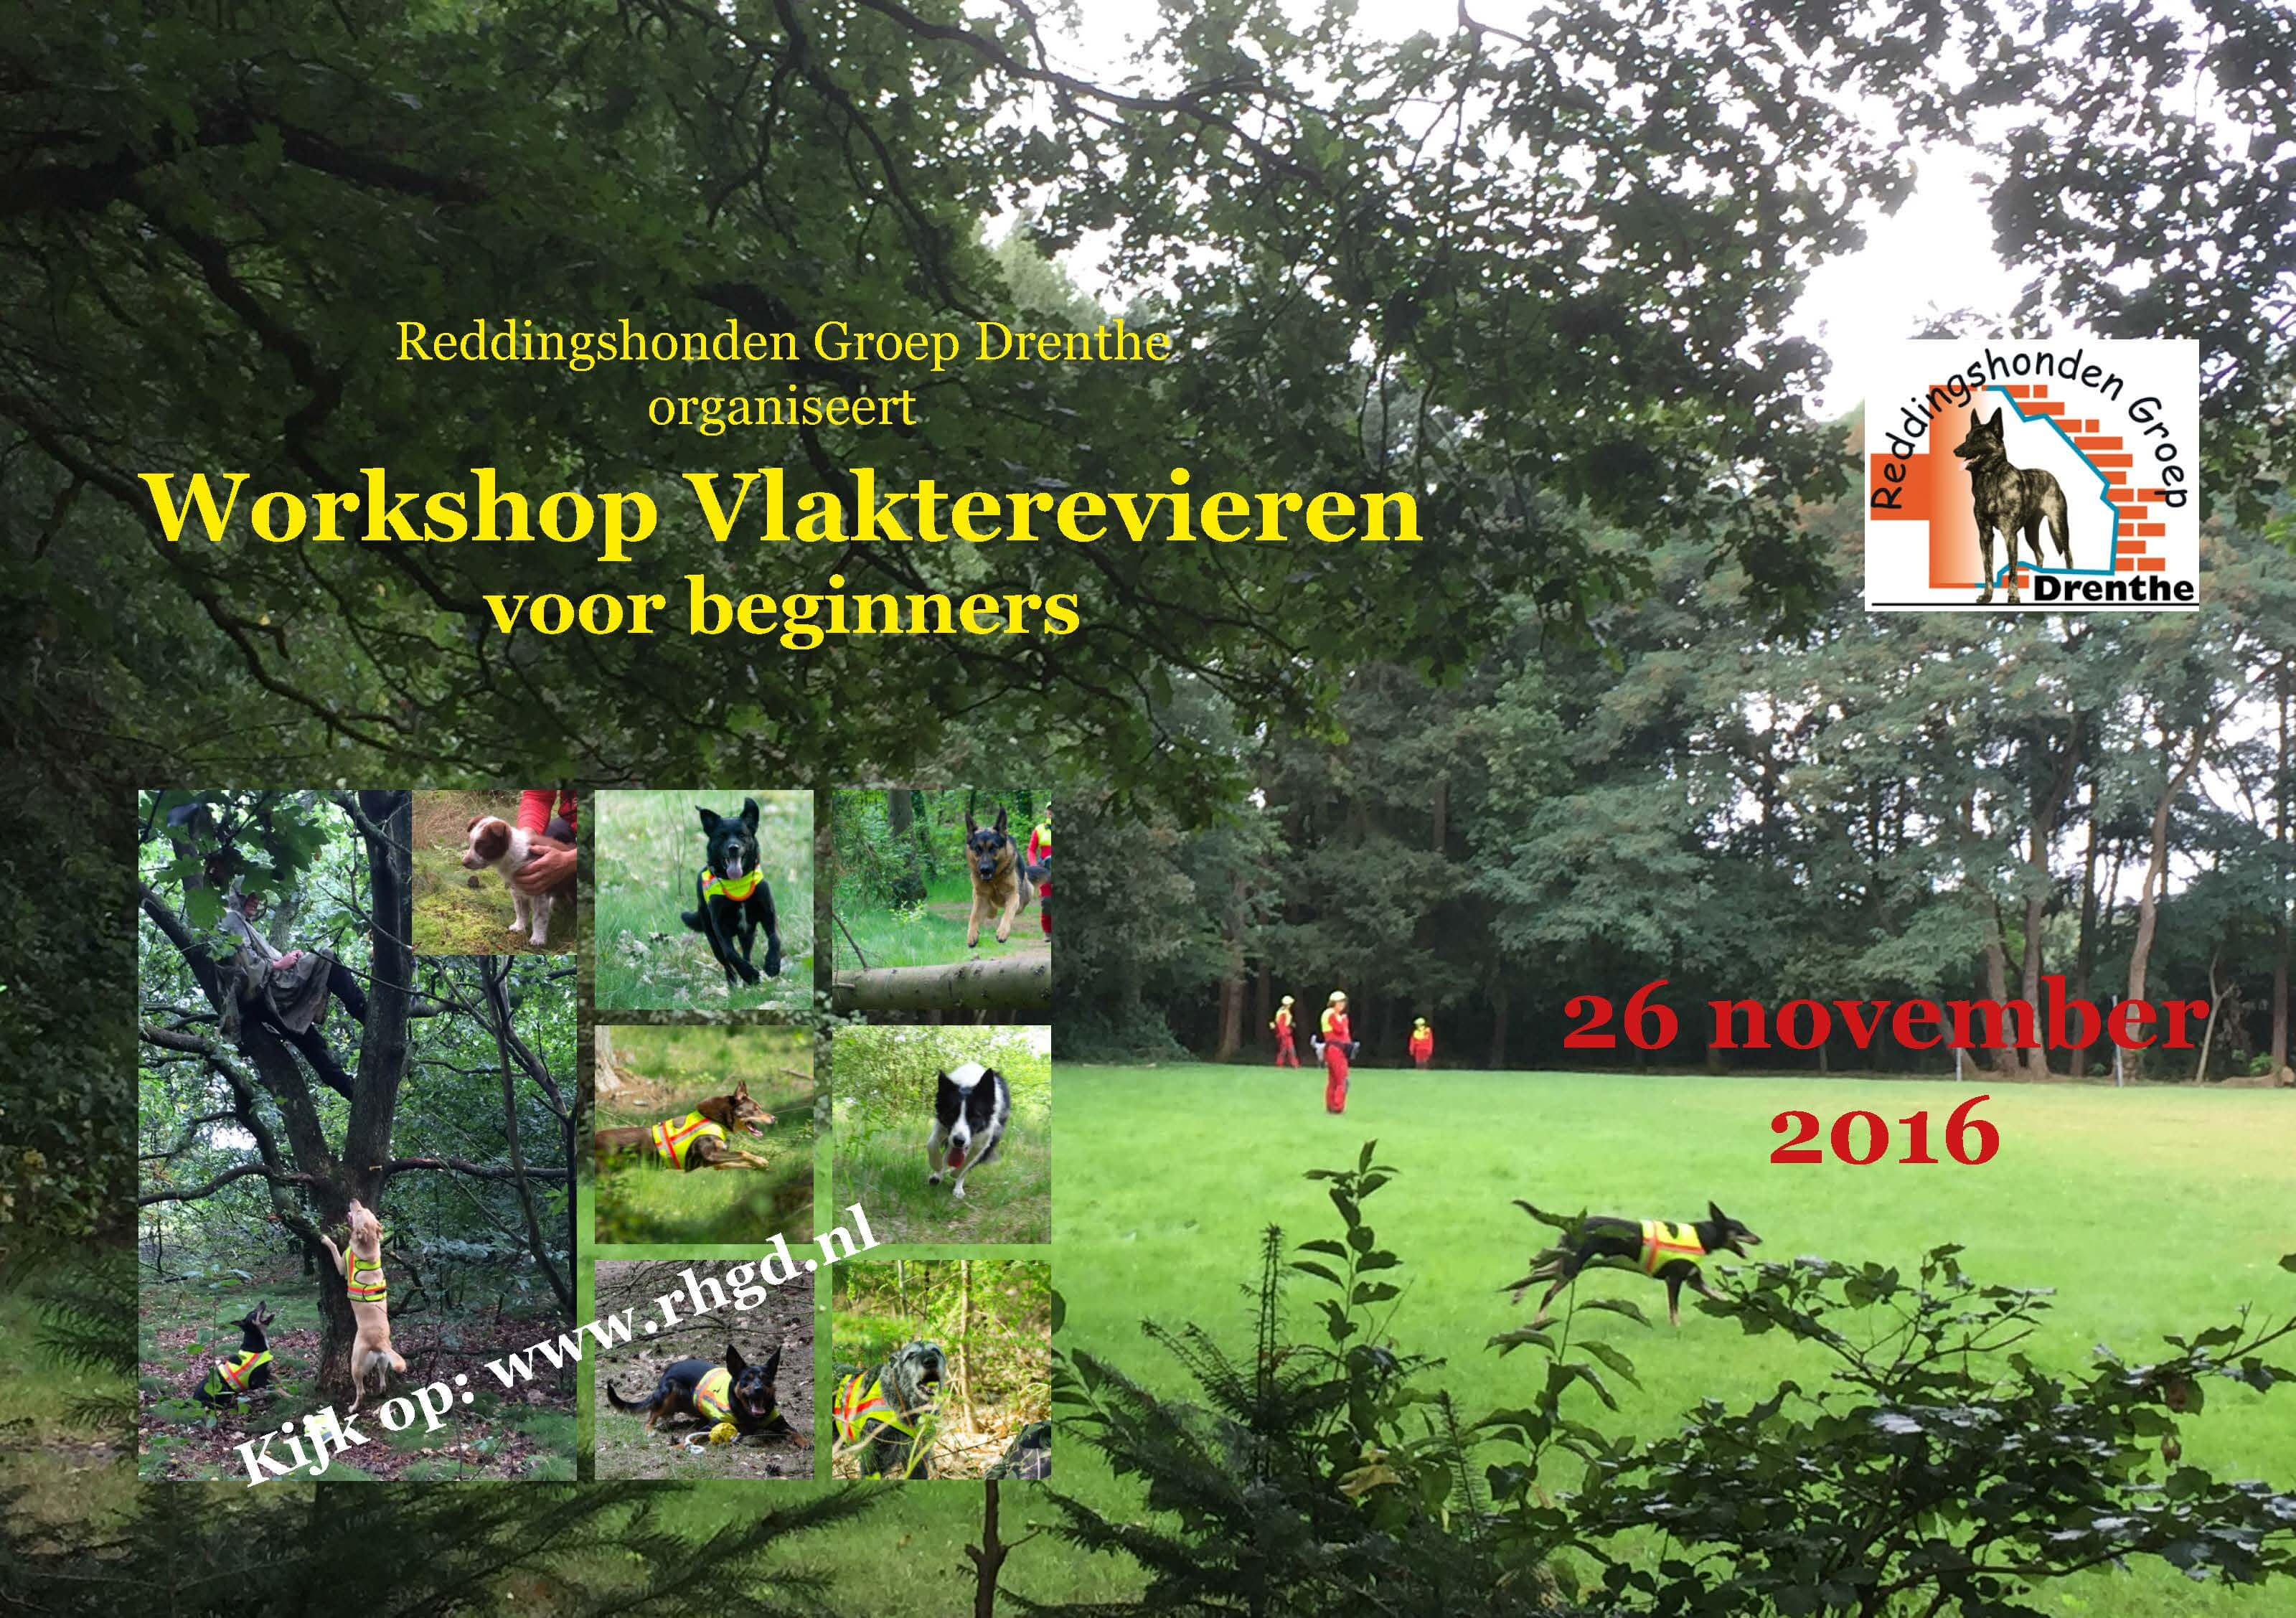 flyer-rhgd-workshop-vlakte-2016-1